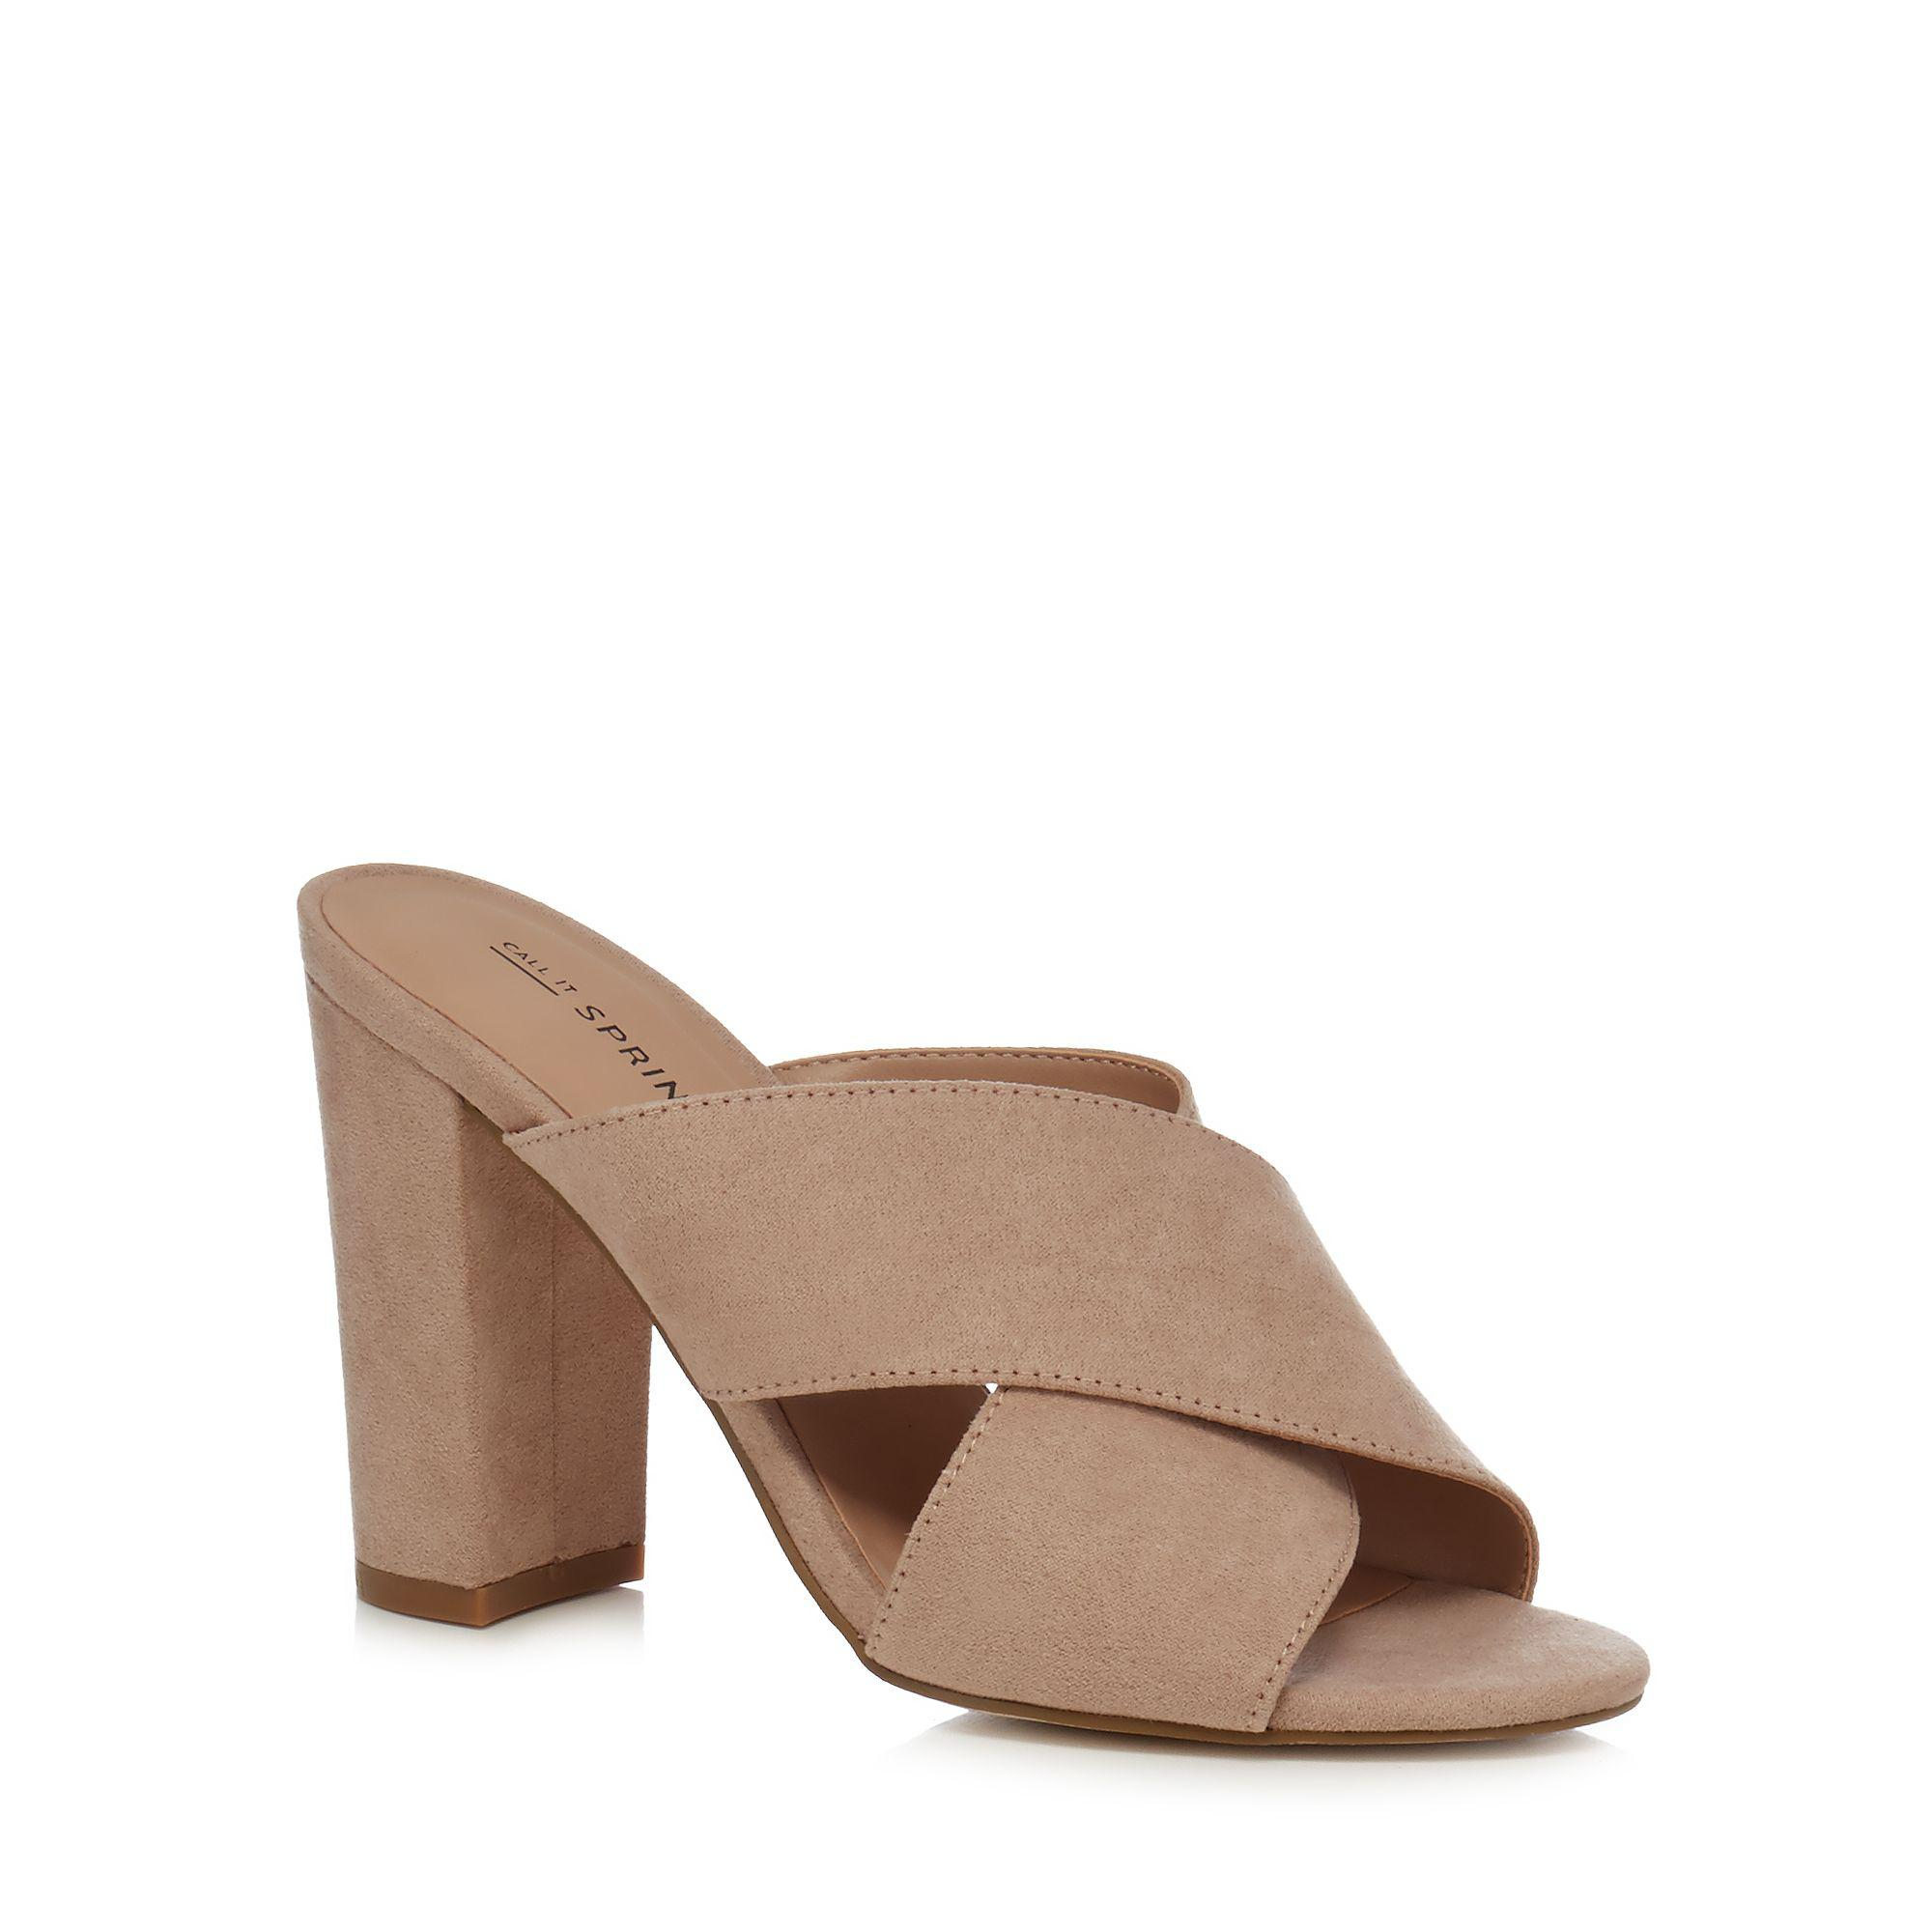 61160350fe3d Call It Spring Light Pink  forland  High Block Heel Mule Sandals in ...